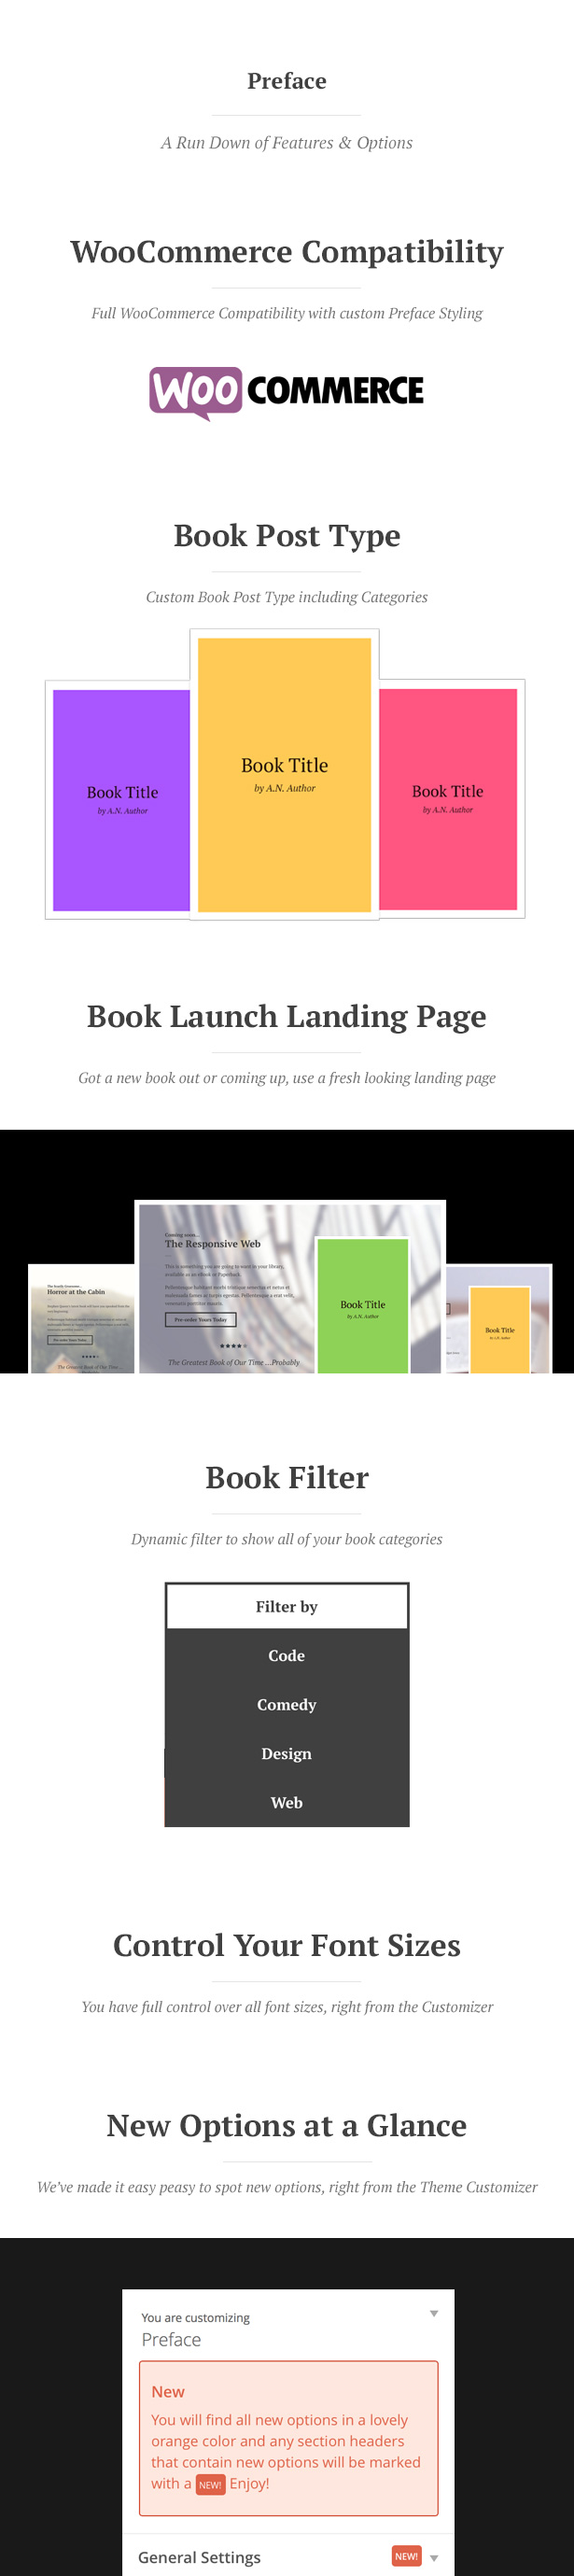 Preface: A WordPress Theme for Authors - 1